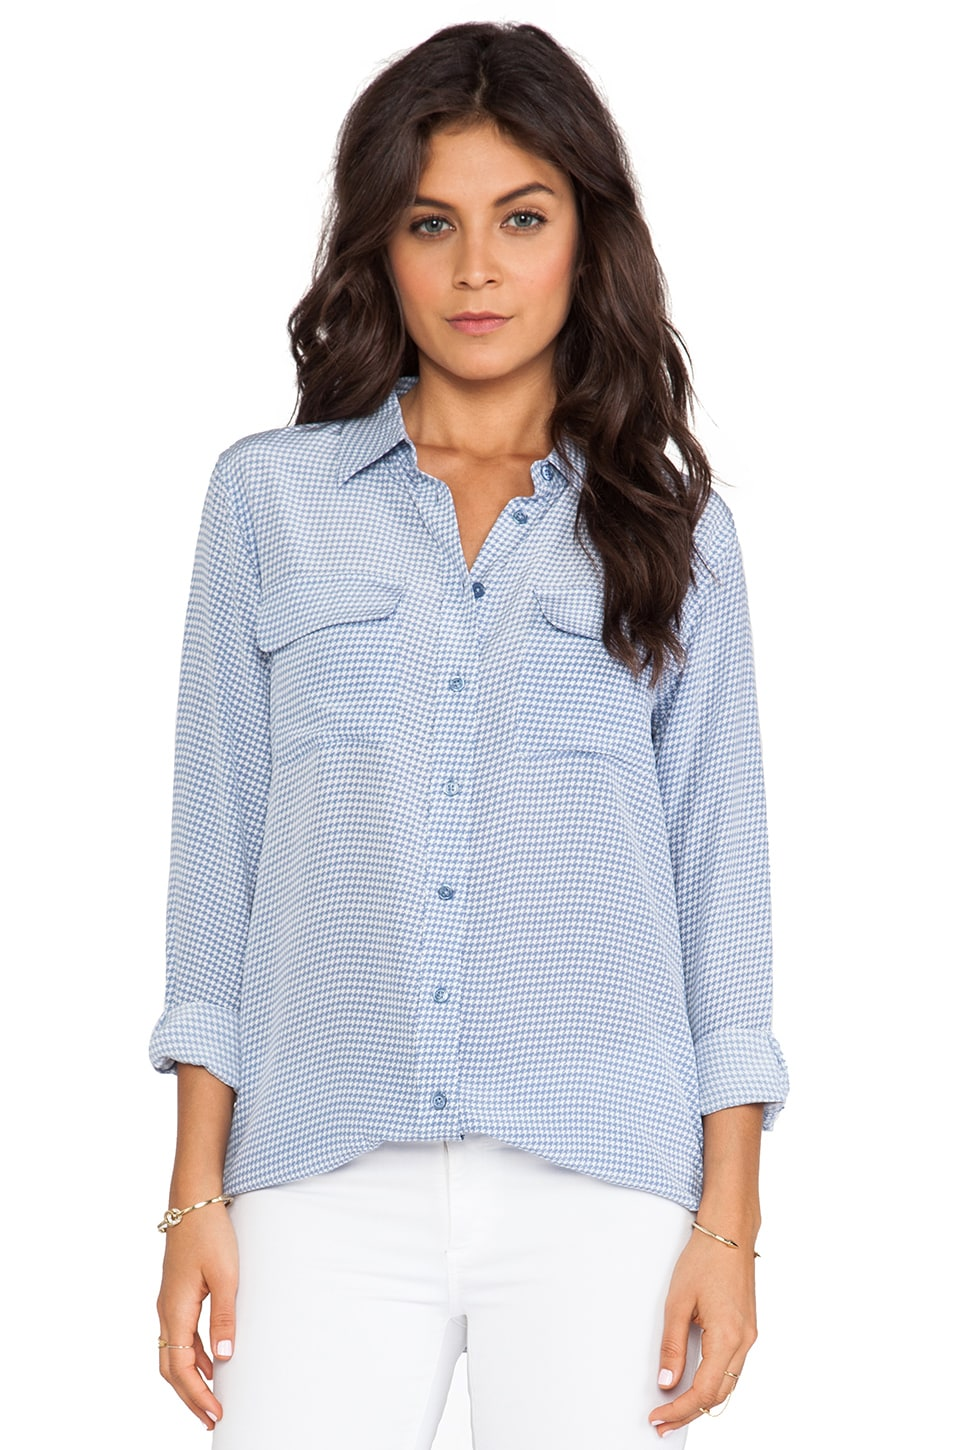 Equipment Slim Signature Archive Absoulte Houndstooth Blouse in Blue Jean & Bright White